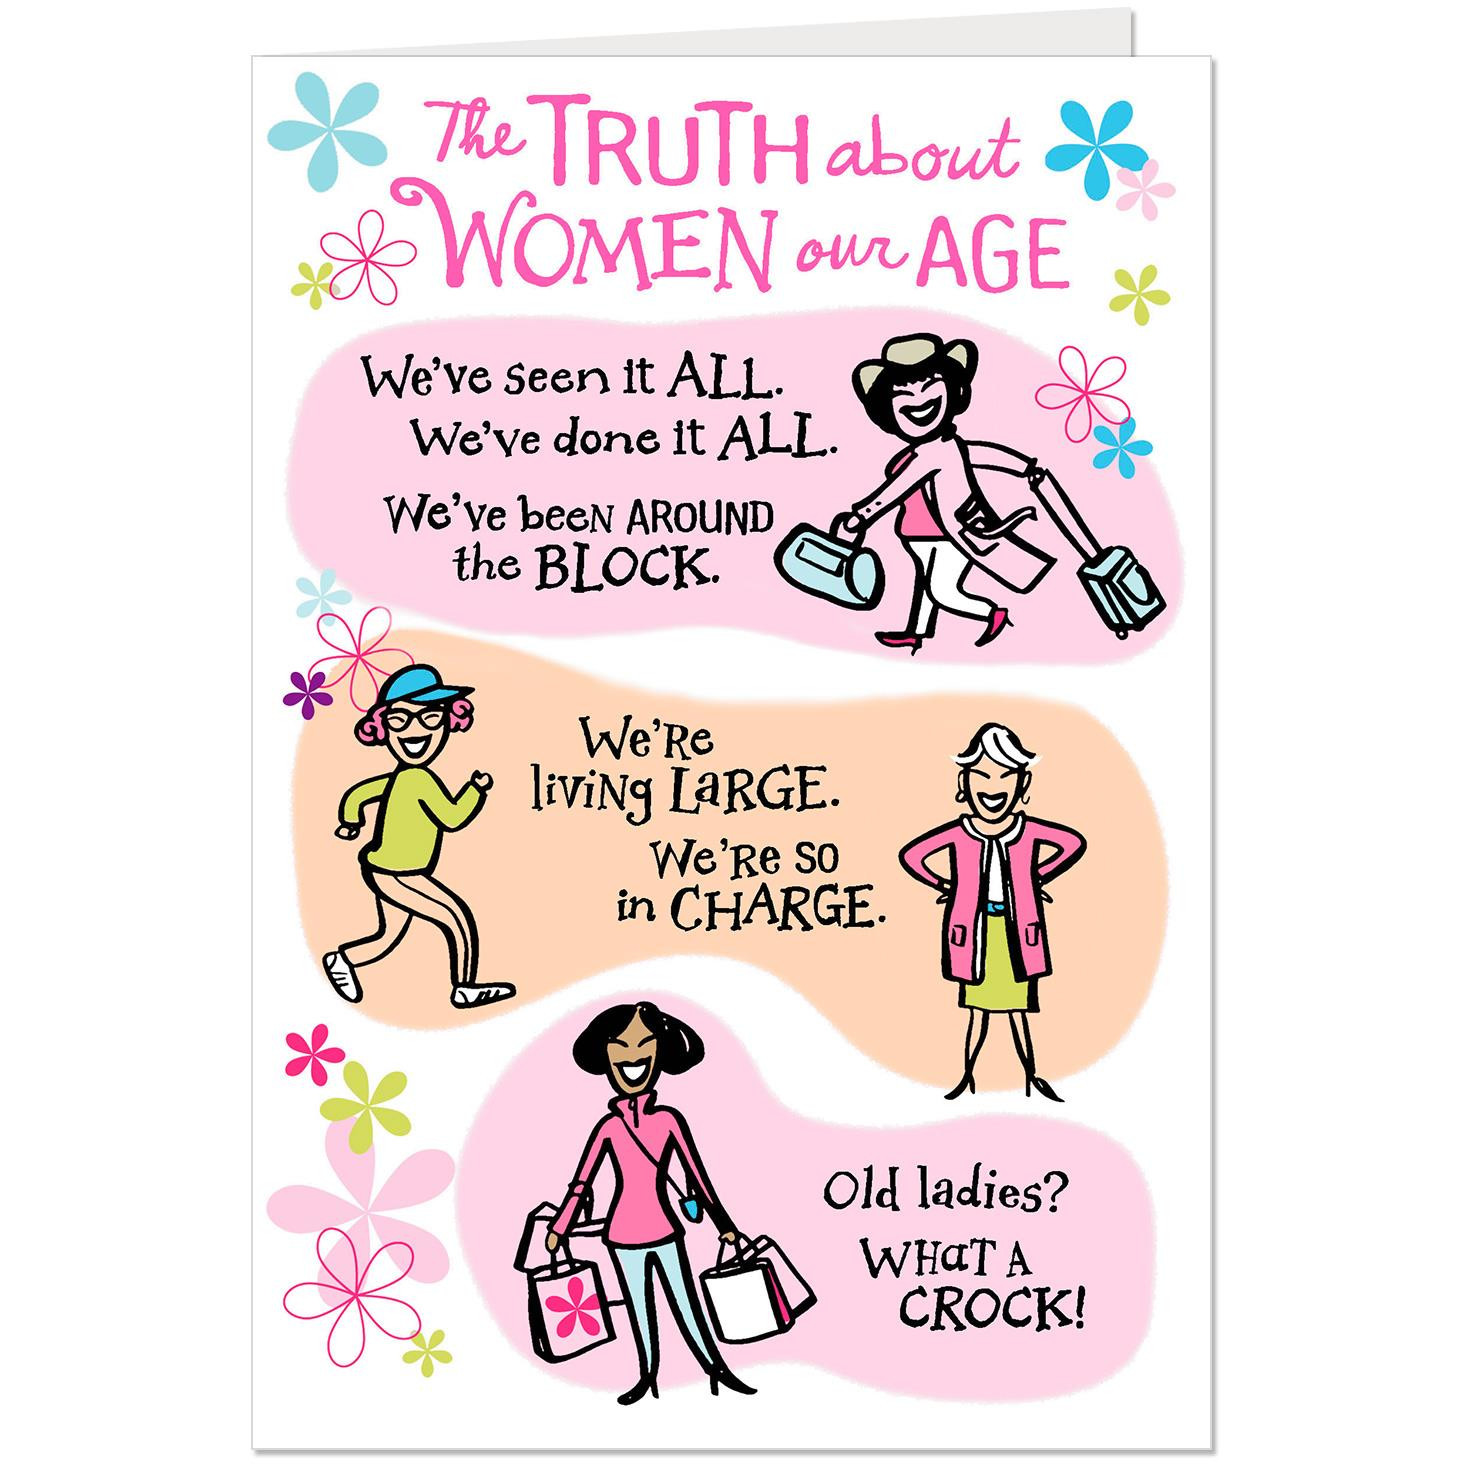 Funny Birthday Card For Friend  Women Our Age Funny Birthday Card for Friend Greeting